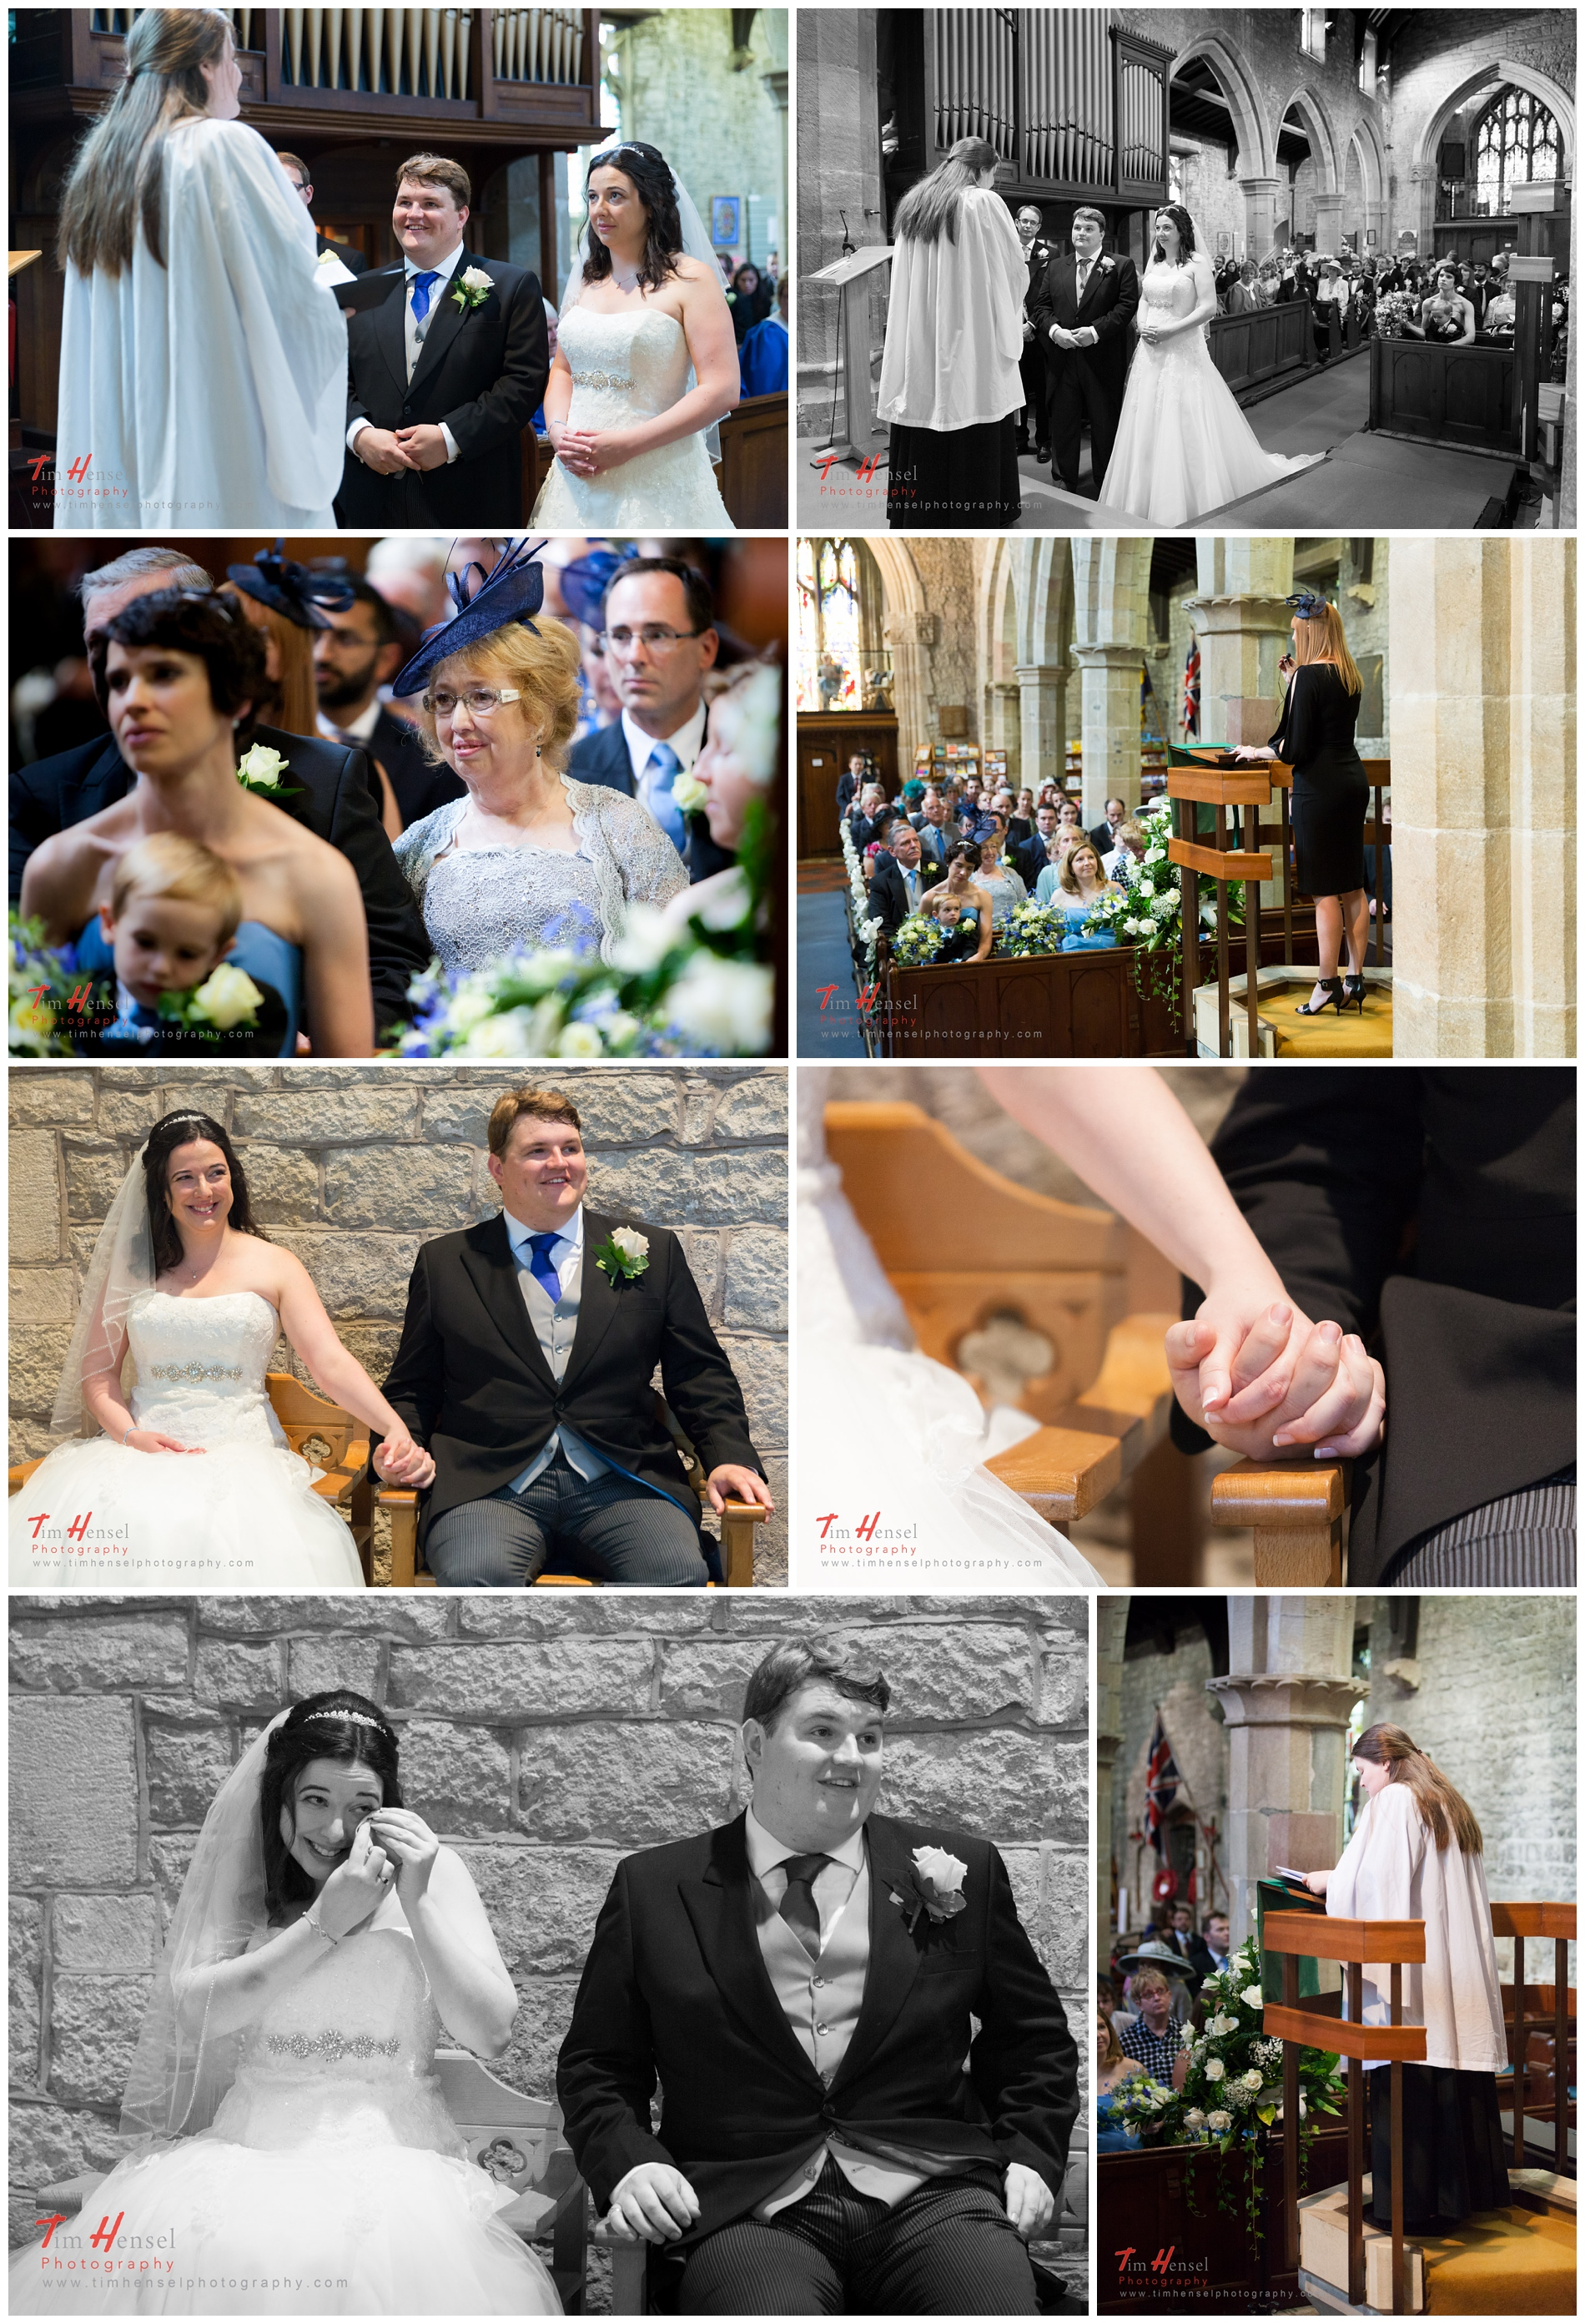 wedding photography in derbyshire at st michael & all angels church